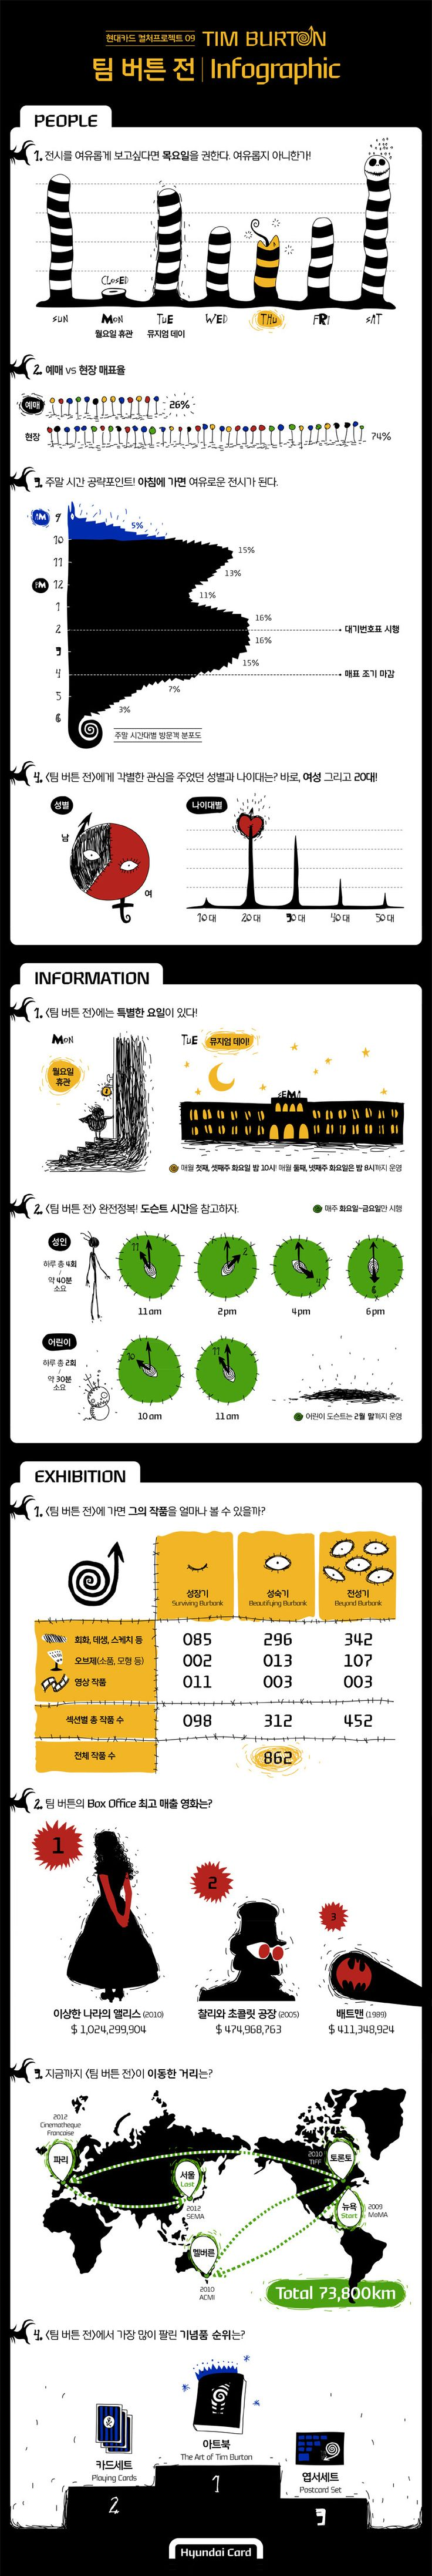 [Hyundai card infographic] The art of Tim Burton exhibition